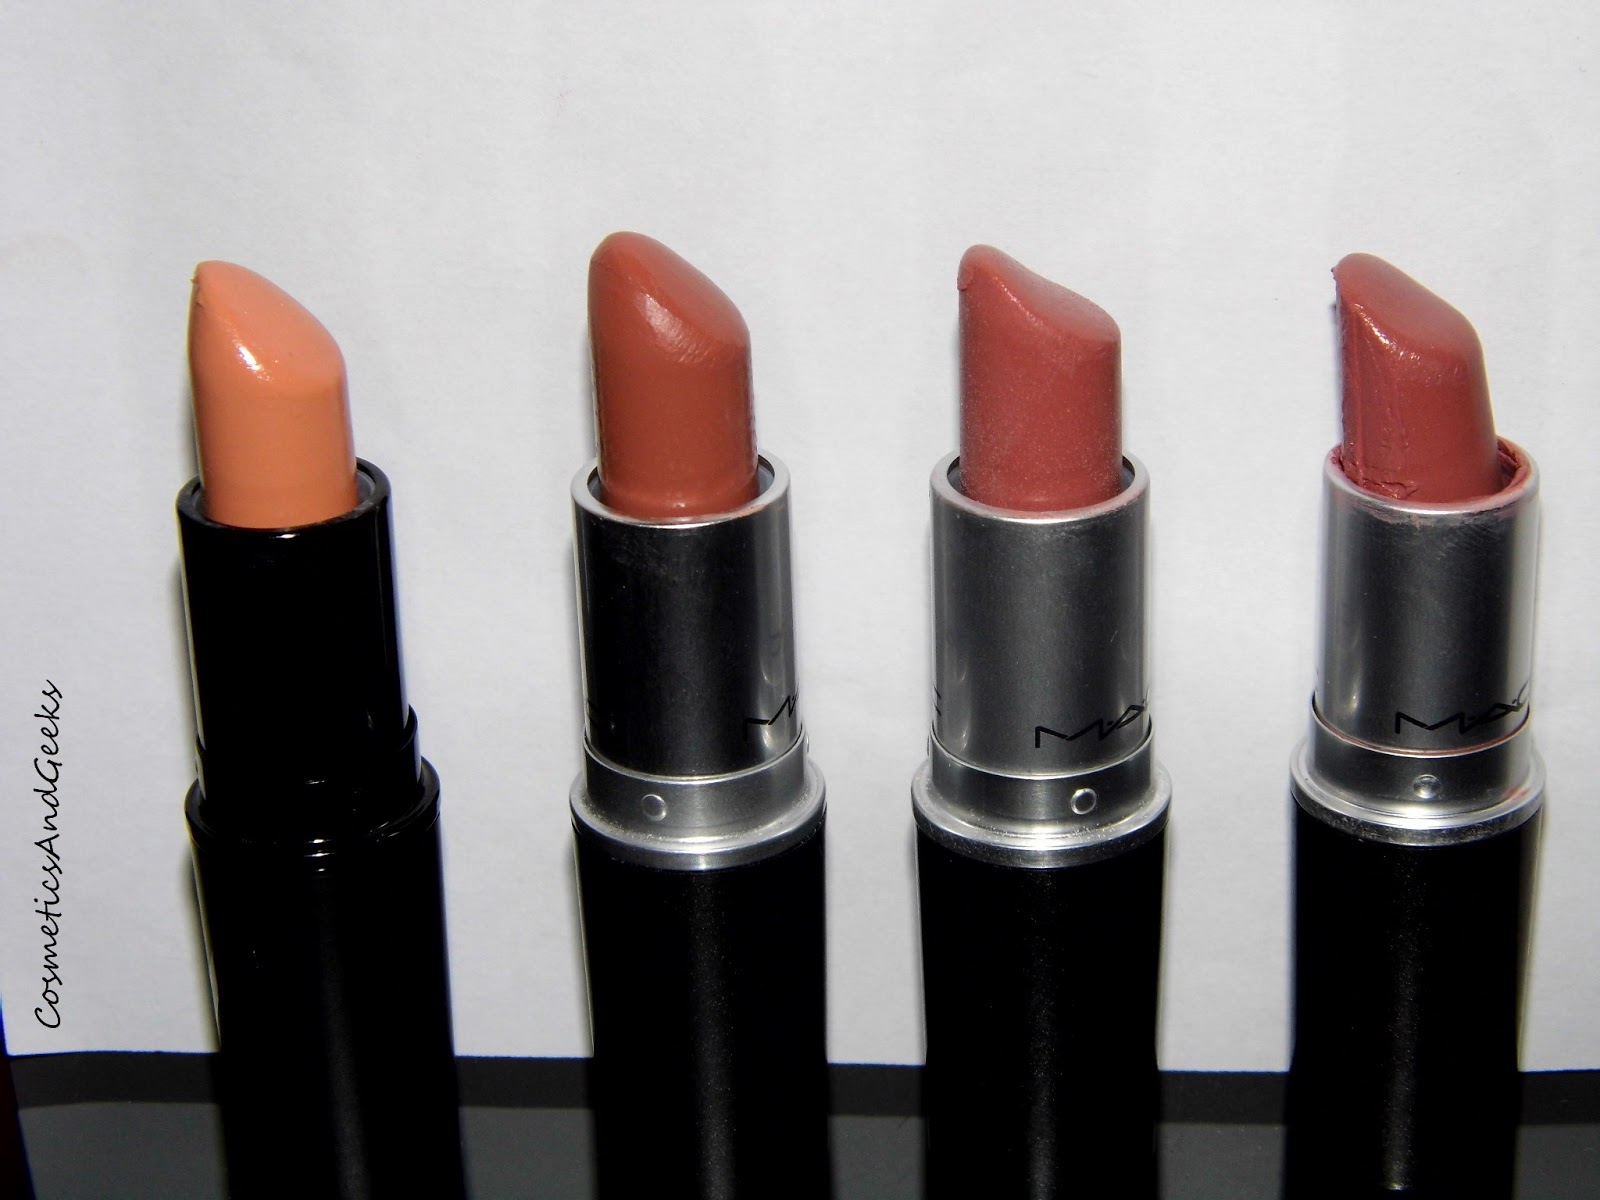 chrystellemakeup swatches rouge a levres mac cosmetics. Black Bedroom Furniture Sets. Home Design Ideas